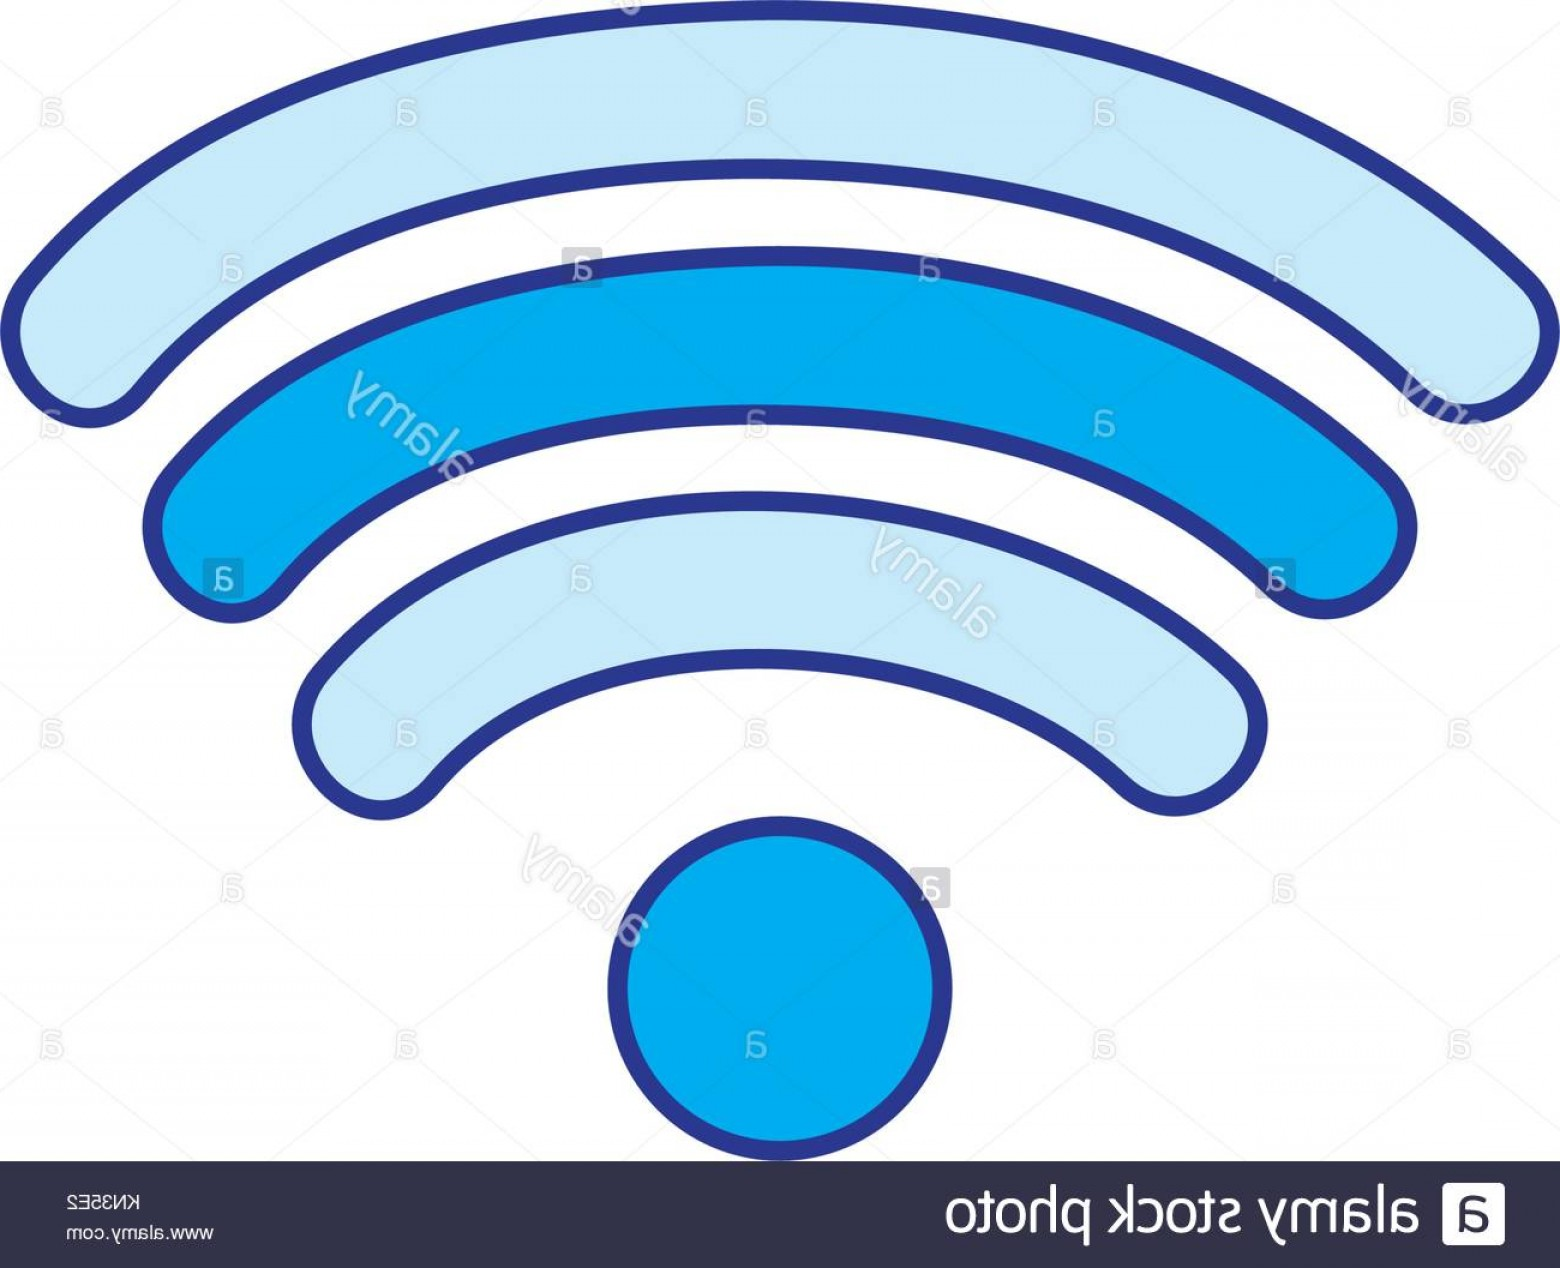 Wifi Symbol Clip Art Vector: Stock Photo Full Color Wifi Symbol Of Digital Internet Connection